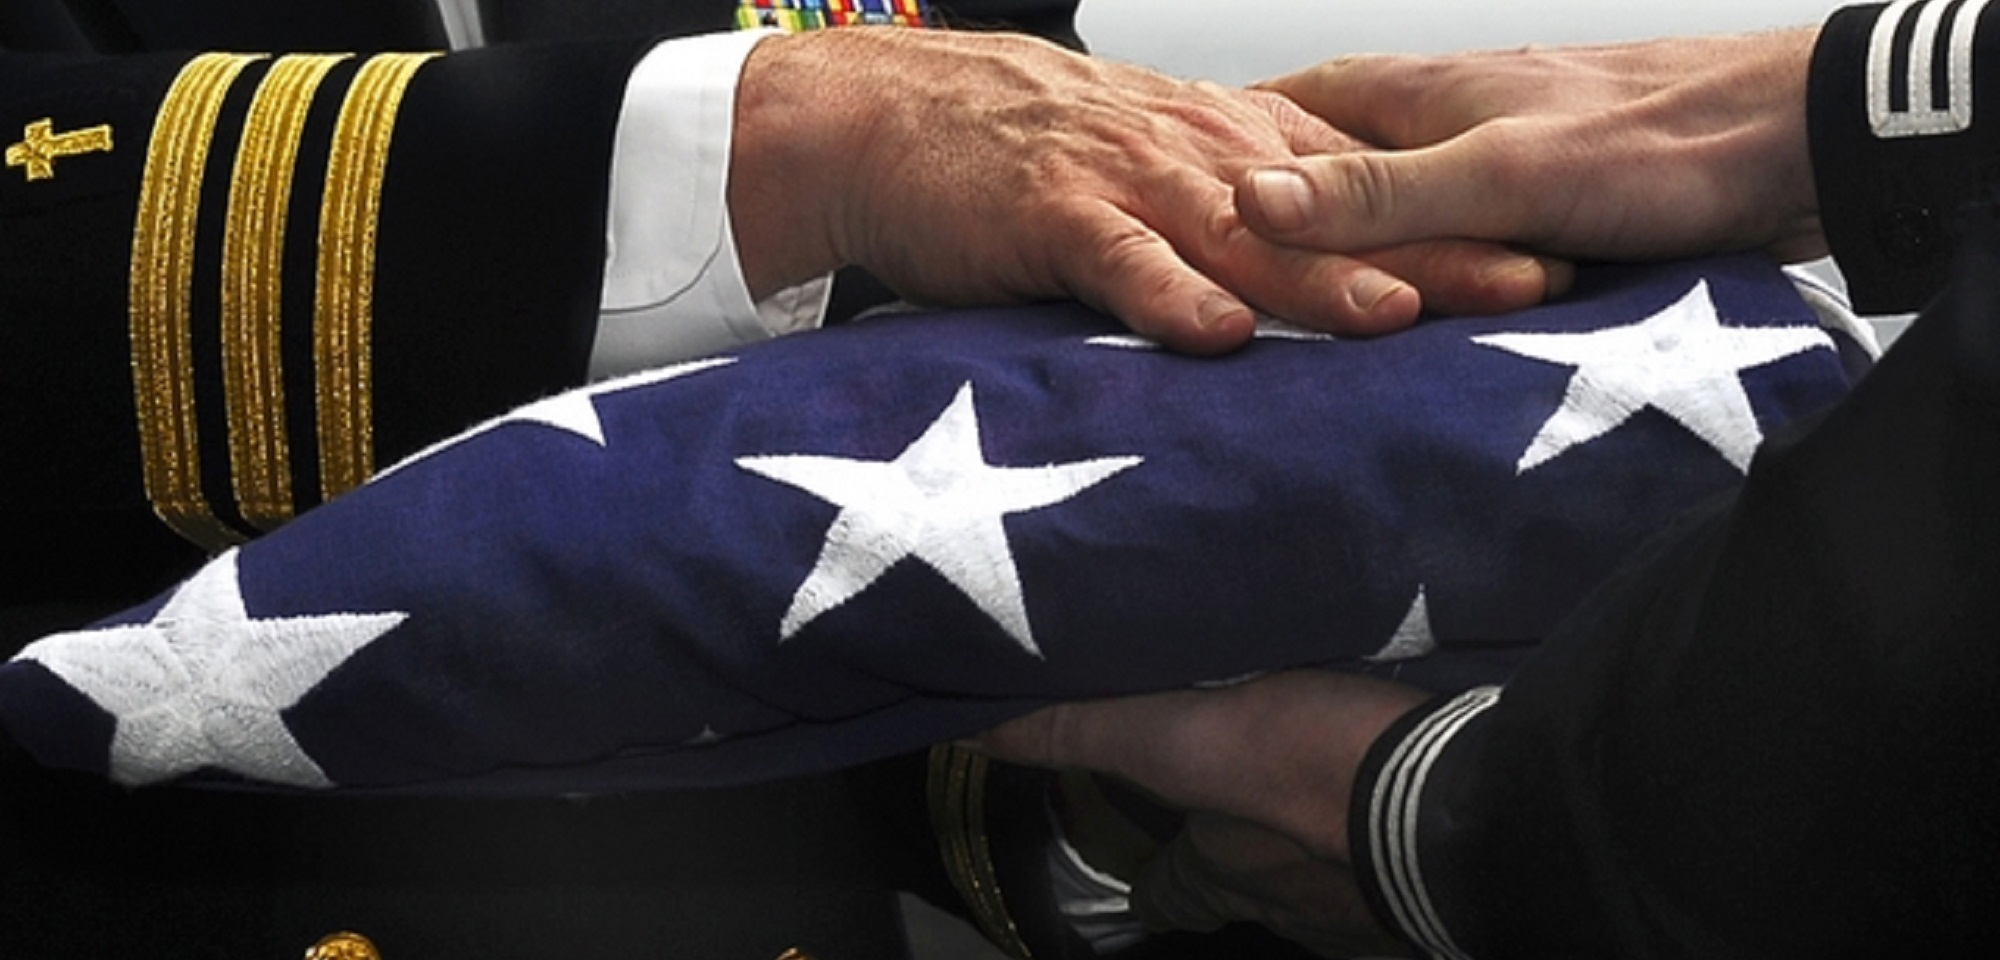 U.S. Navy Cmdr. Ronald Kawczynski hands a U.S. flag to Religous Program Specialist 3rd Class David Swan during a burial-at-sea aboard the aircraft carrier USS John C. Stennis (CVN 74) Feb. 16, 2009, in the Pacific Ocean.  The ship is on a scheduled six-month deployment to the Western Pacific. (U.S. Navy photo by Mass Communication Specialist 3rd Class Walter M. Wayman/Released)